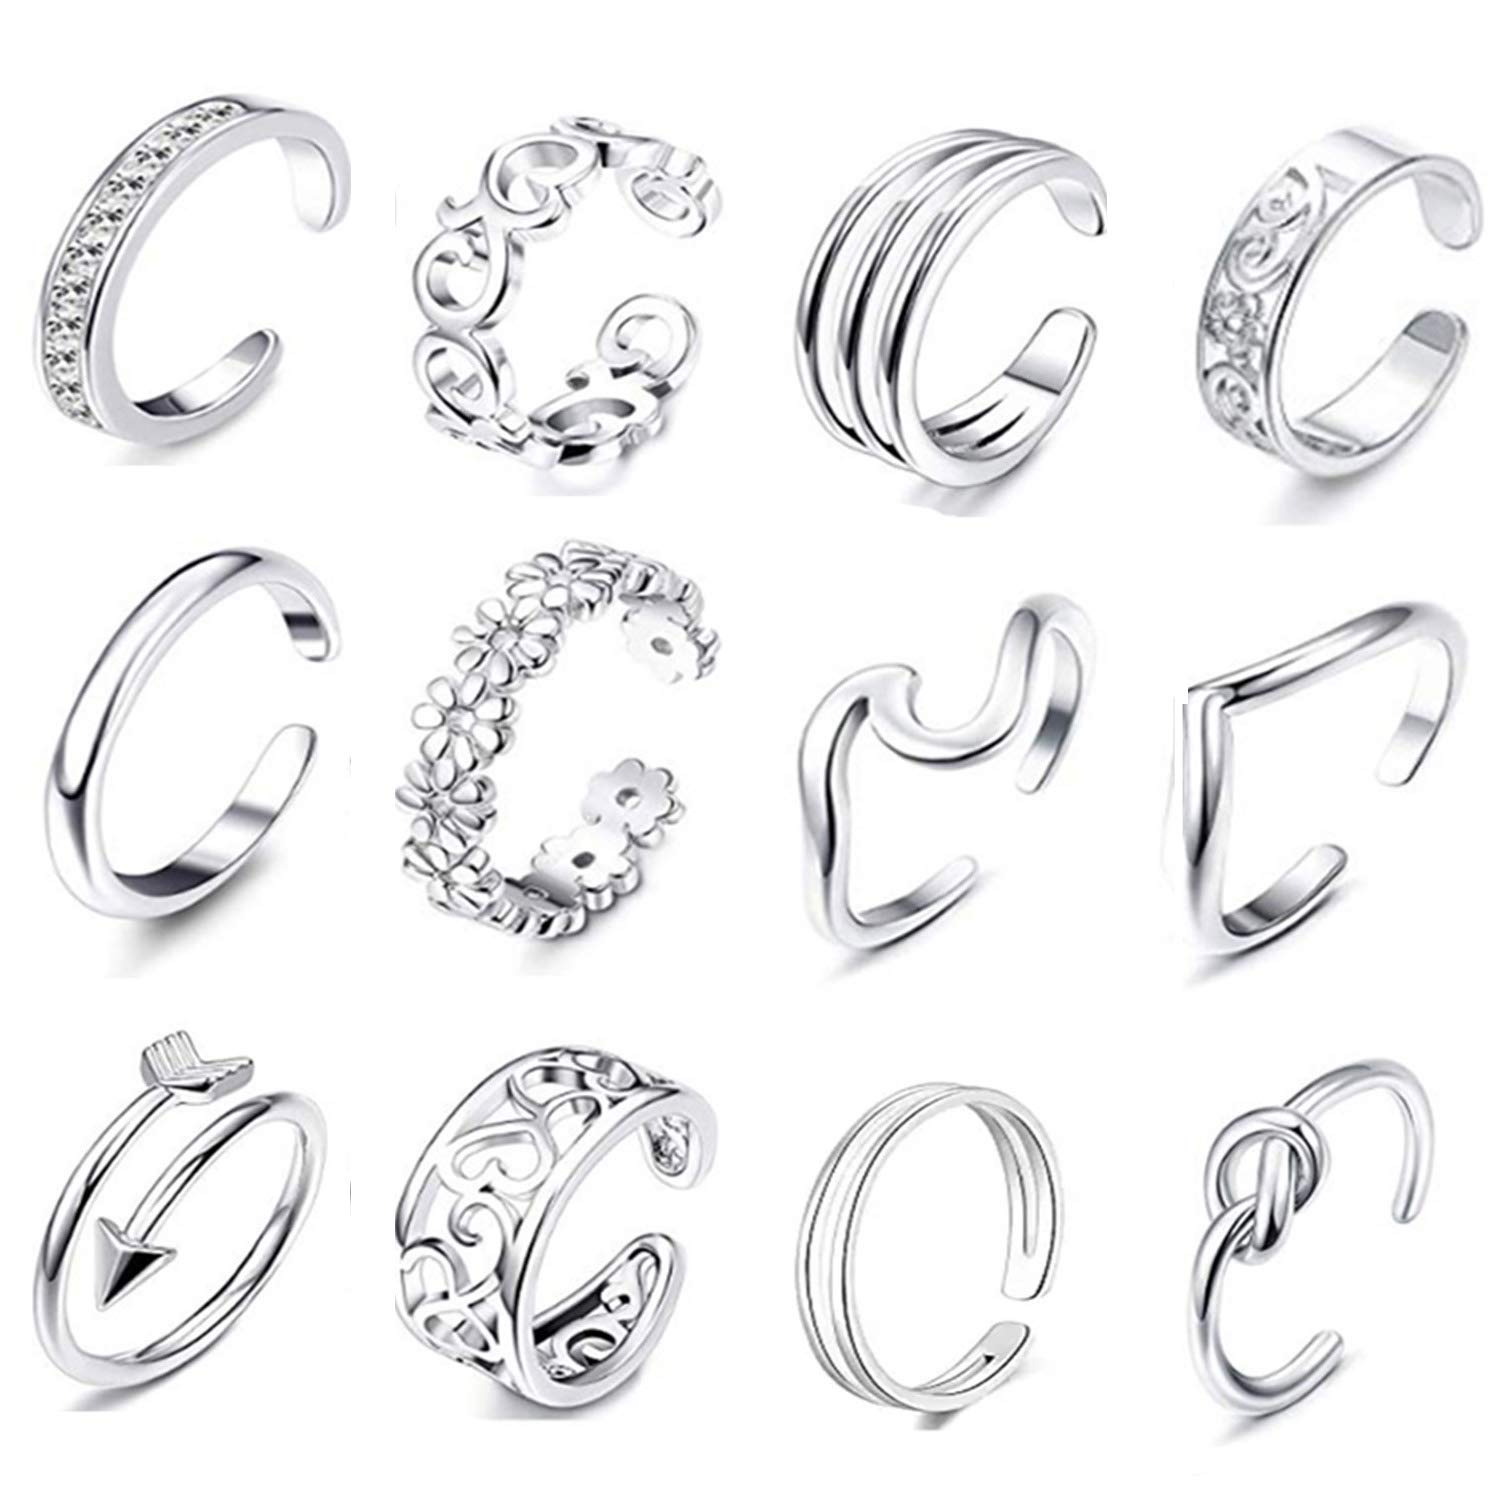 FIBO STEEL 12 Pcs Open Toe Rings for Women Girls Vintage Retro Wave Flower Celtic Knot Arrow Tail Band Toe Ring Adjustable Silver-Tone by FIBO STEEL